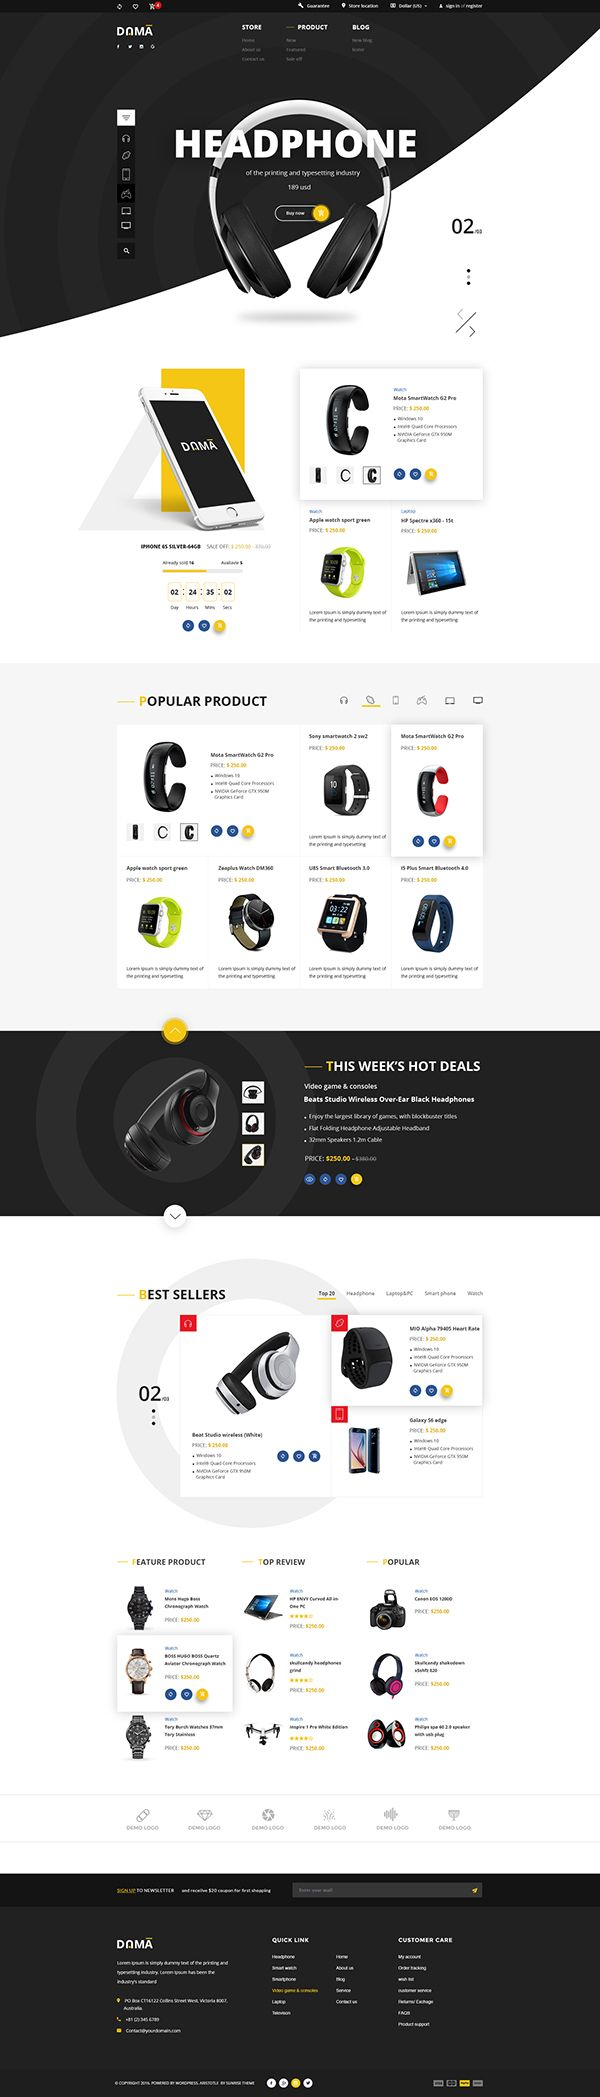 Cool 1 Year Experience Resume Format For Java Developer Huge 100th Day Hat Template Shaped 12 Team Schedule Template 15 Year Old Resume Young 1st Job Resume Objective Bright2014 Yearly Calendar Template 25  Best Ideas About Mobile Website Template On Pinterest | Ui ..